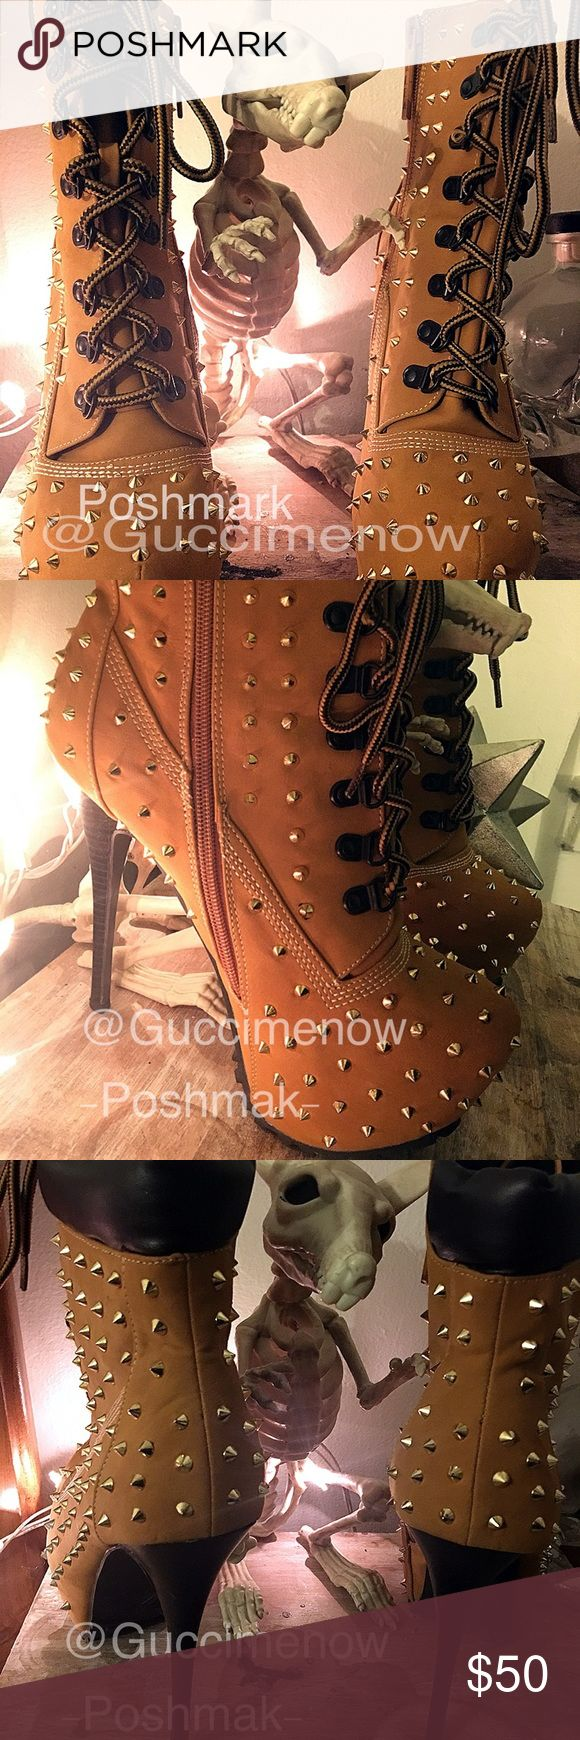 """🔥SPIKED LACED BOOT🔥W/BOX Wether you're from NYC or all the way on the west coast, you'll feel like you want to just walk just about anywhere in these 6"""" platform edgy spiked heels! Never worn perfect condition. Gorgeous shoes comes with original box easy pickings Shoes Heeled Boots"""